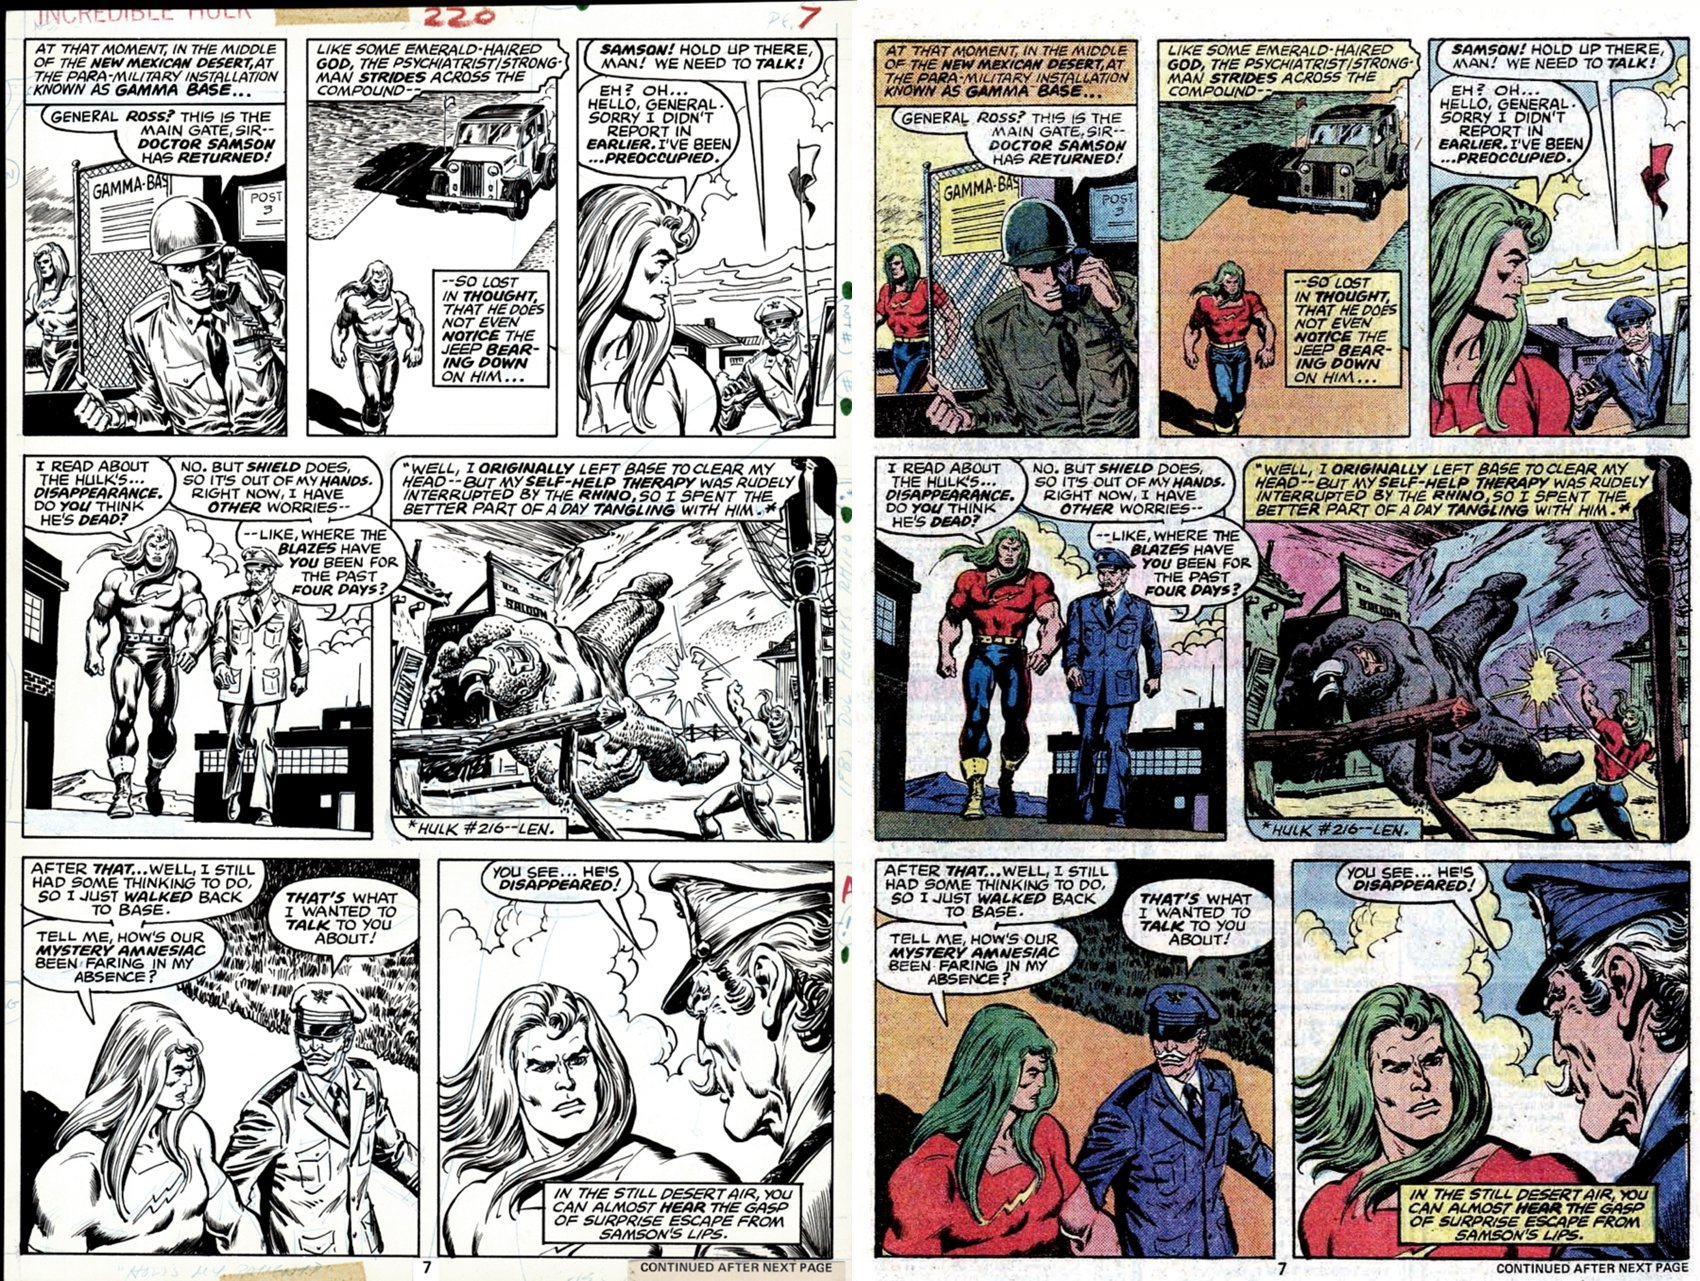 Incredible Hulk #220 p 7 (SOLD LIVE ON 'DUELING DEALERS OF COMIC ART' EPISODE #25 PODCAST ON 7-14-2021 (RE-WATCH THIS FUNNY ART SELLING SHOW HERE)